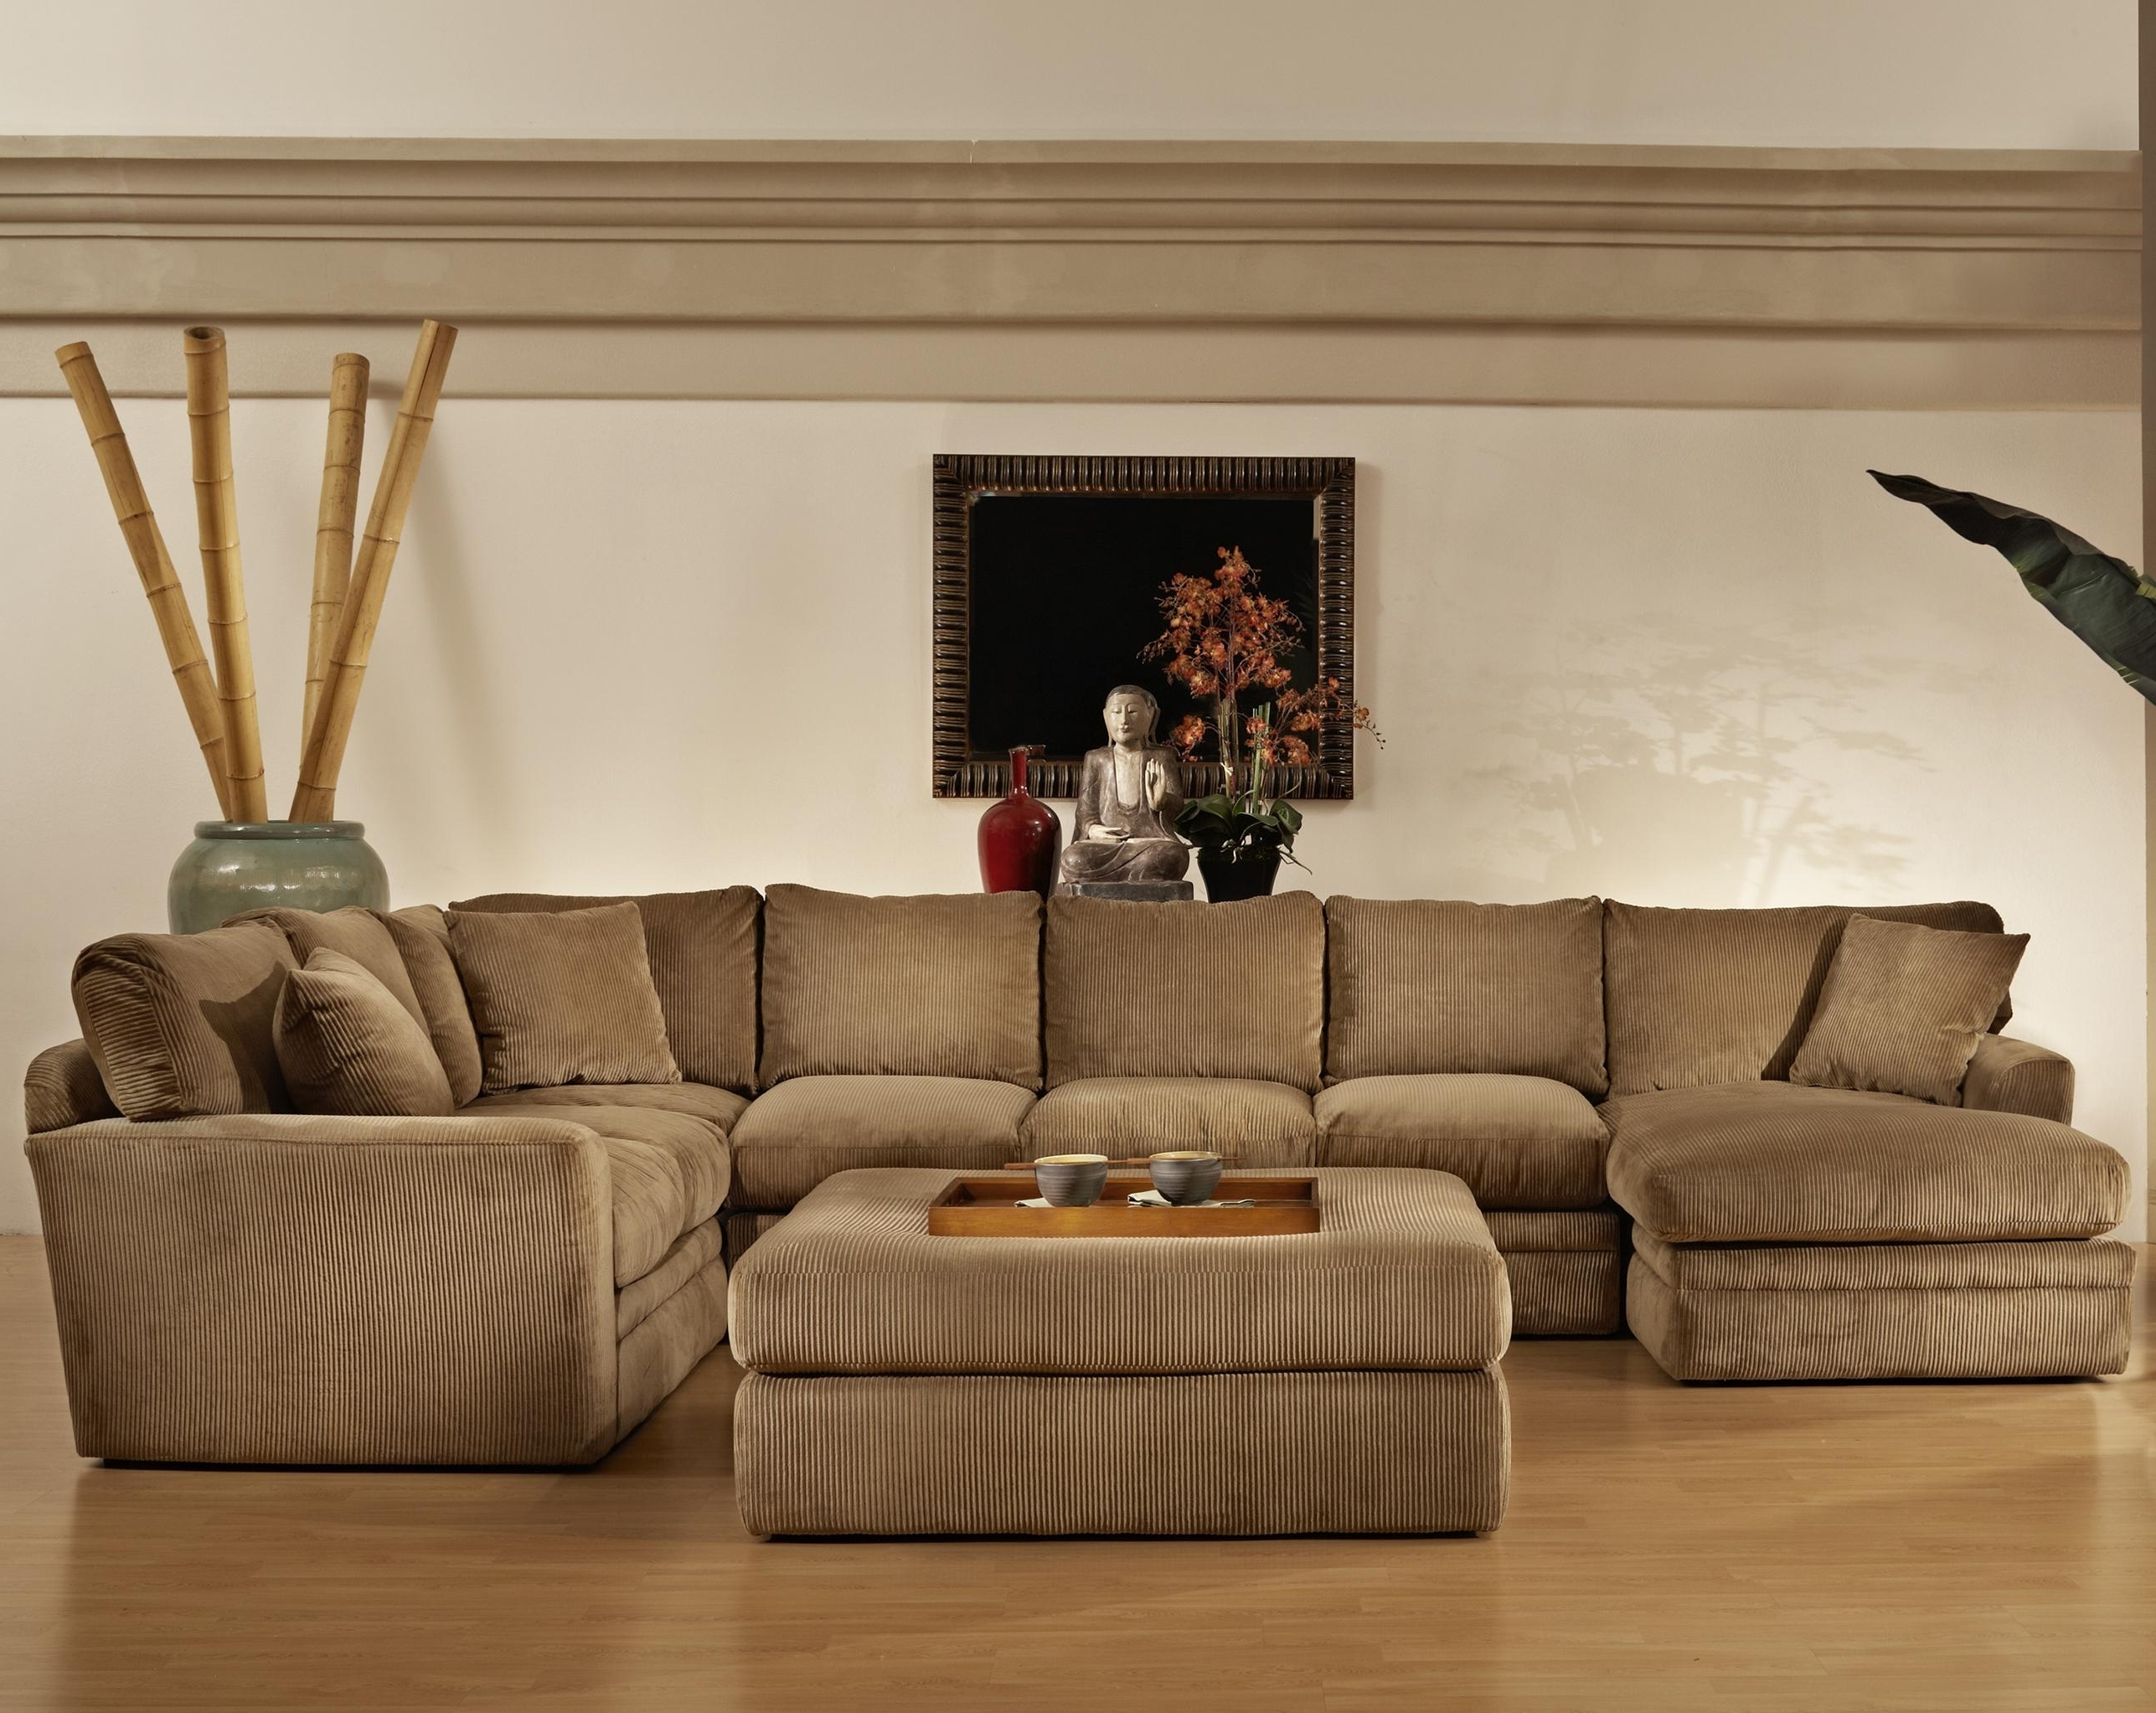 Current Extra Large Sectional Sofa With Chaise And Ottoman U Shaped In Throughout Extra Large Sectional Sofas With Chaise (View 4 of 15)